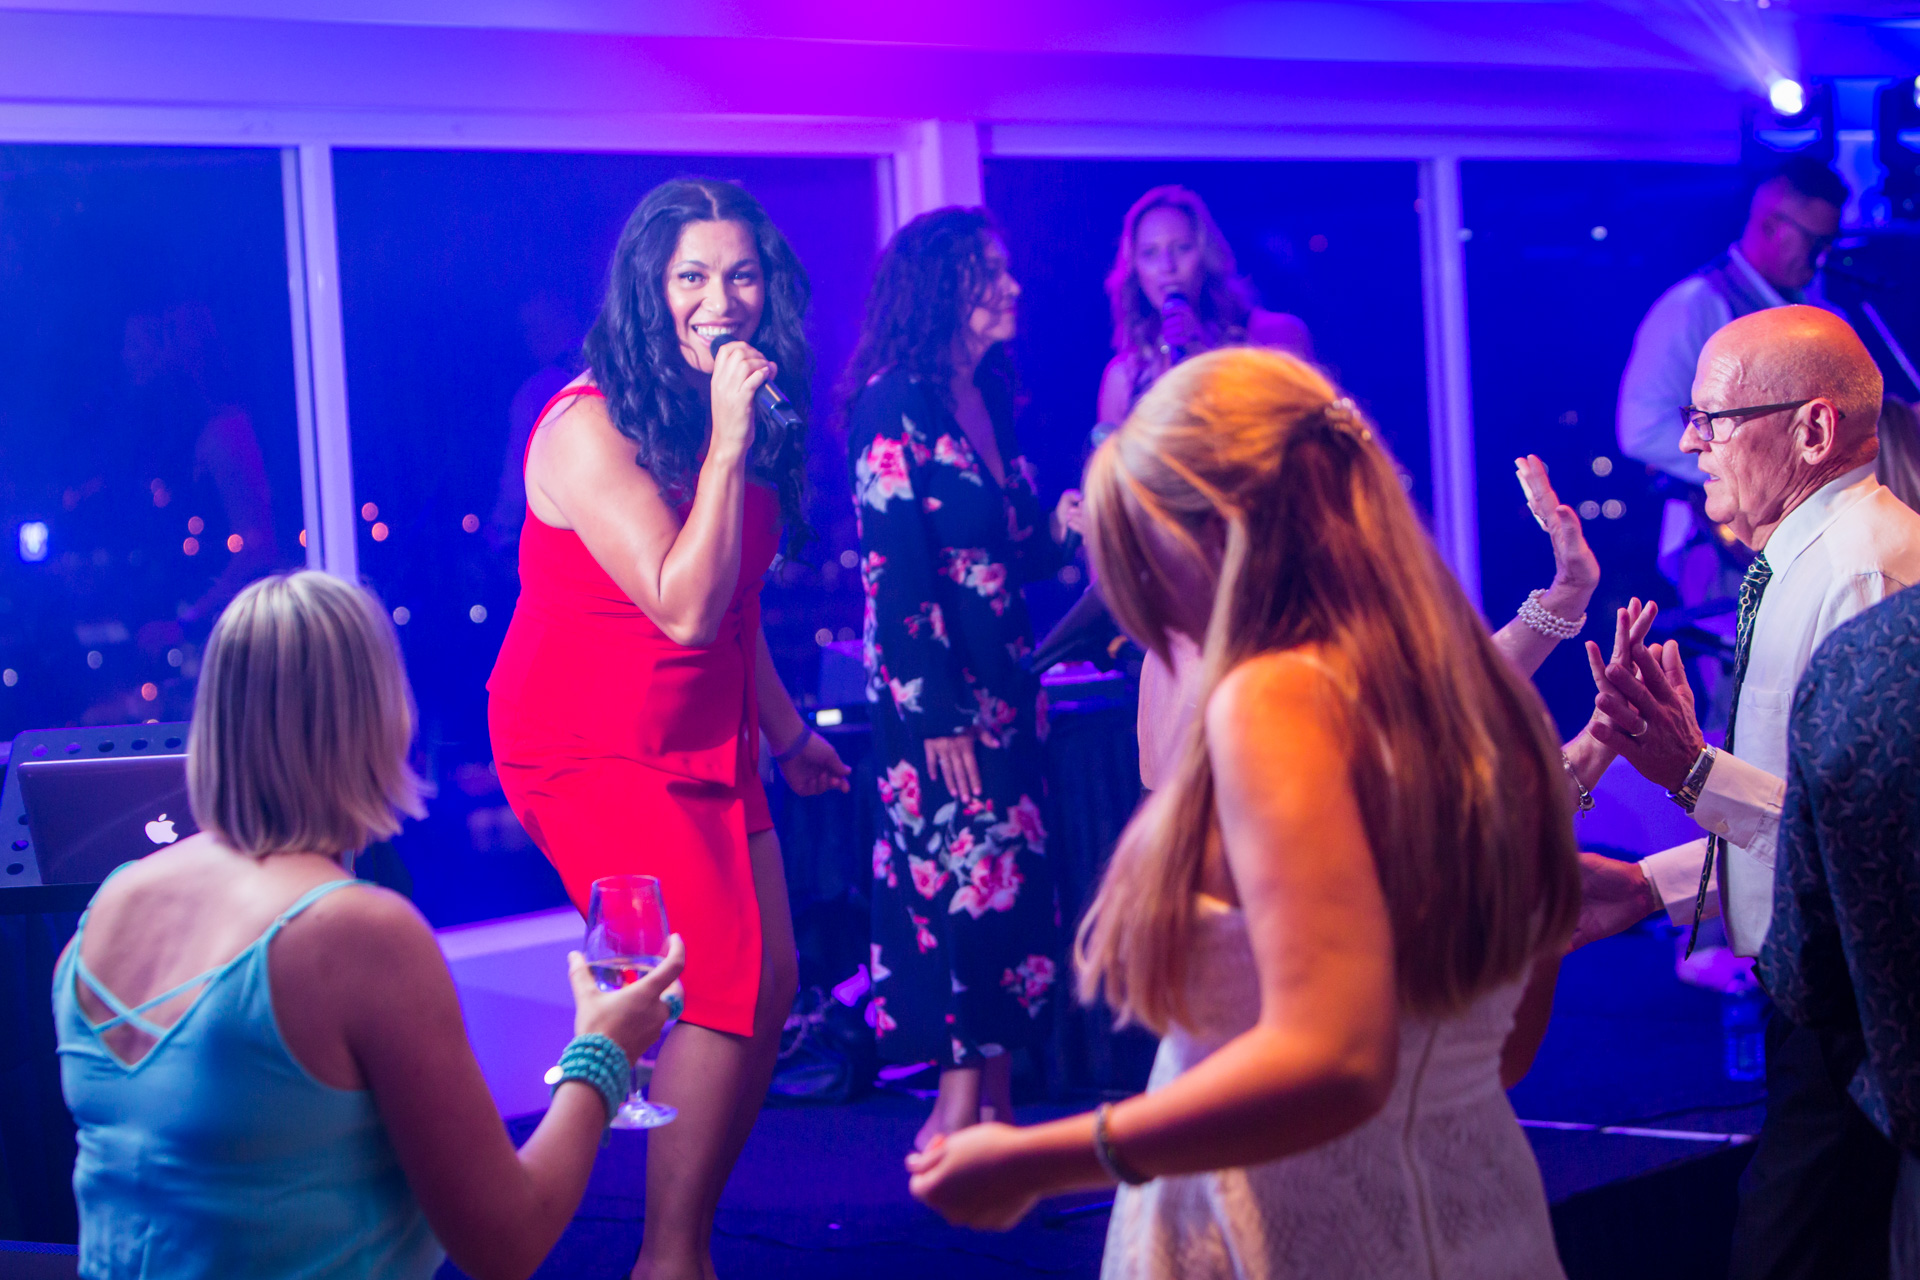 Profesisonal Event Photographer, Rydges South Bank Brisbane Event Photography10.jpg